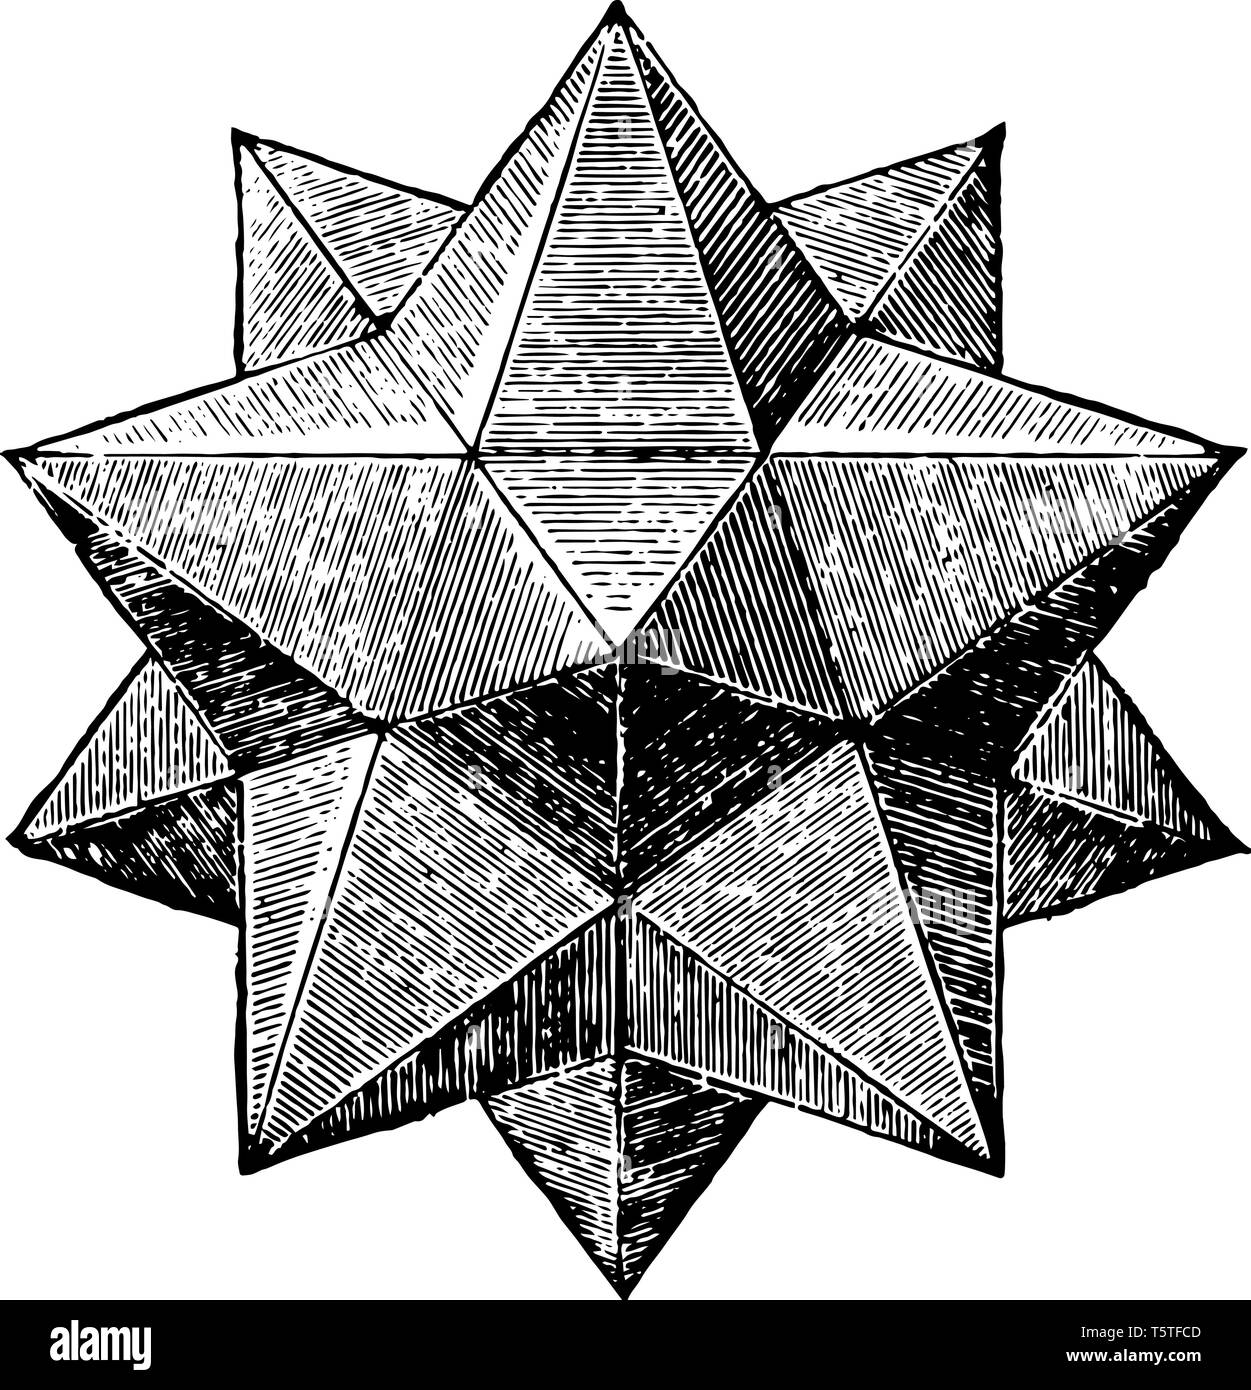 Stellated Dodecahedron High Resolution Stock Photography and Images - Alamy